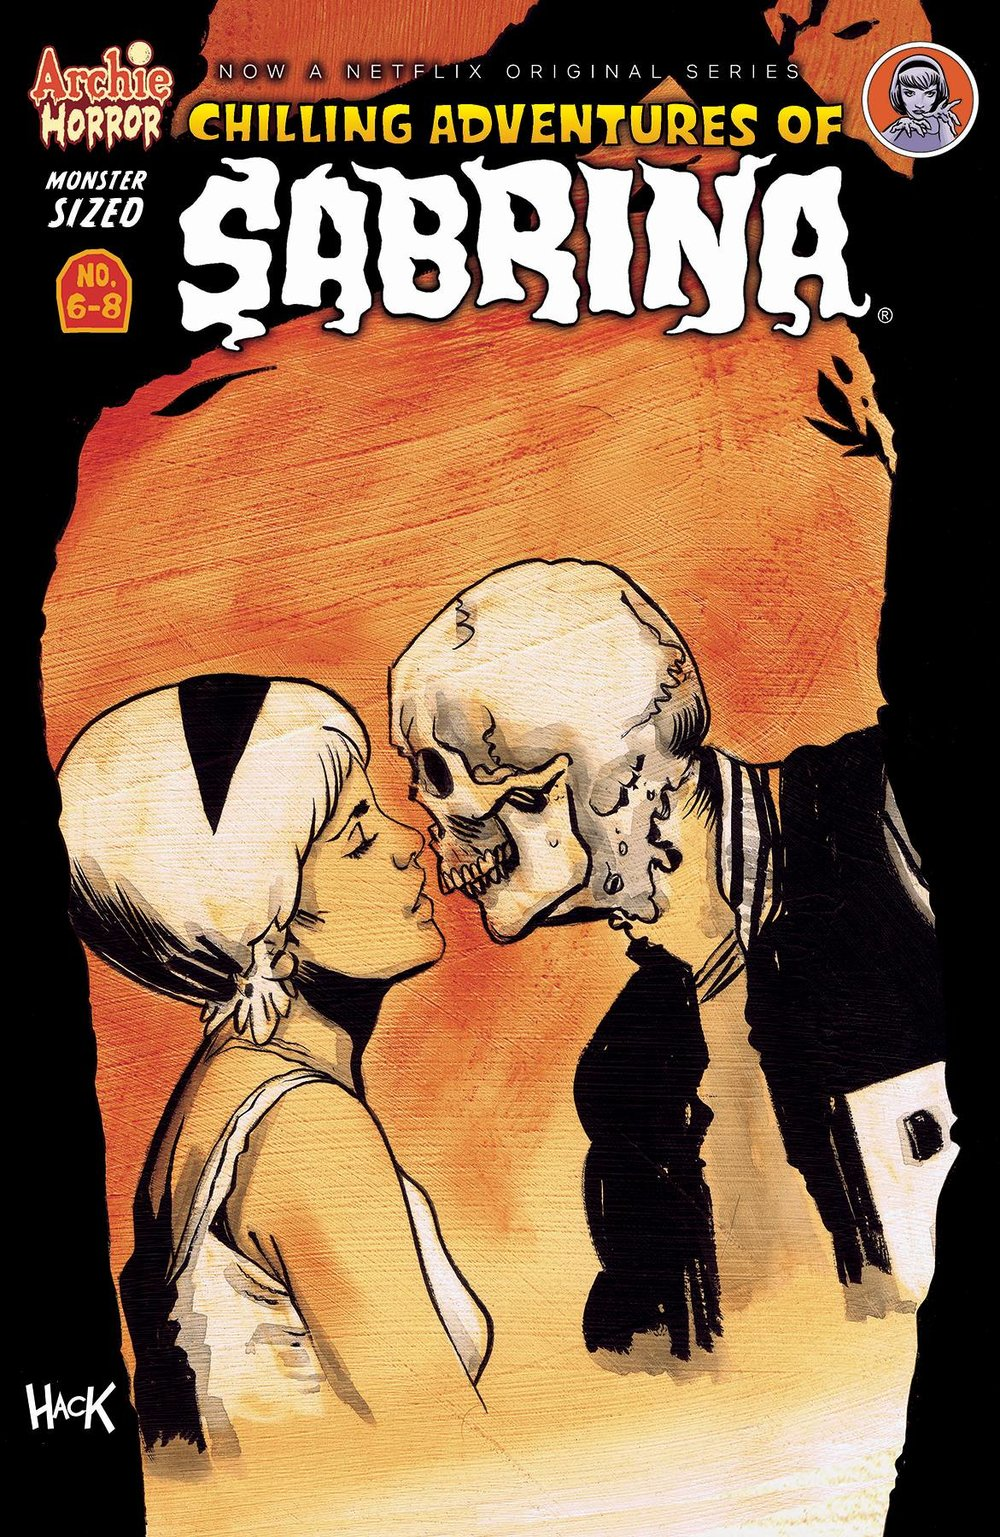 MONSTER SIZED CHILLING ADVENTURES OF SABRINA 1.jpg